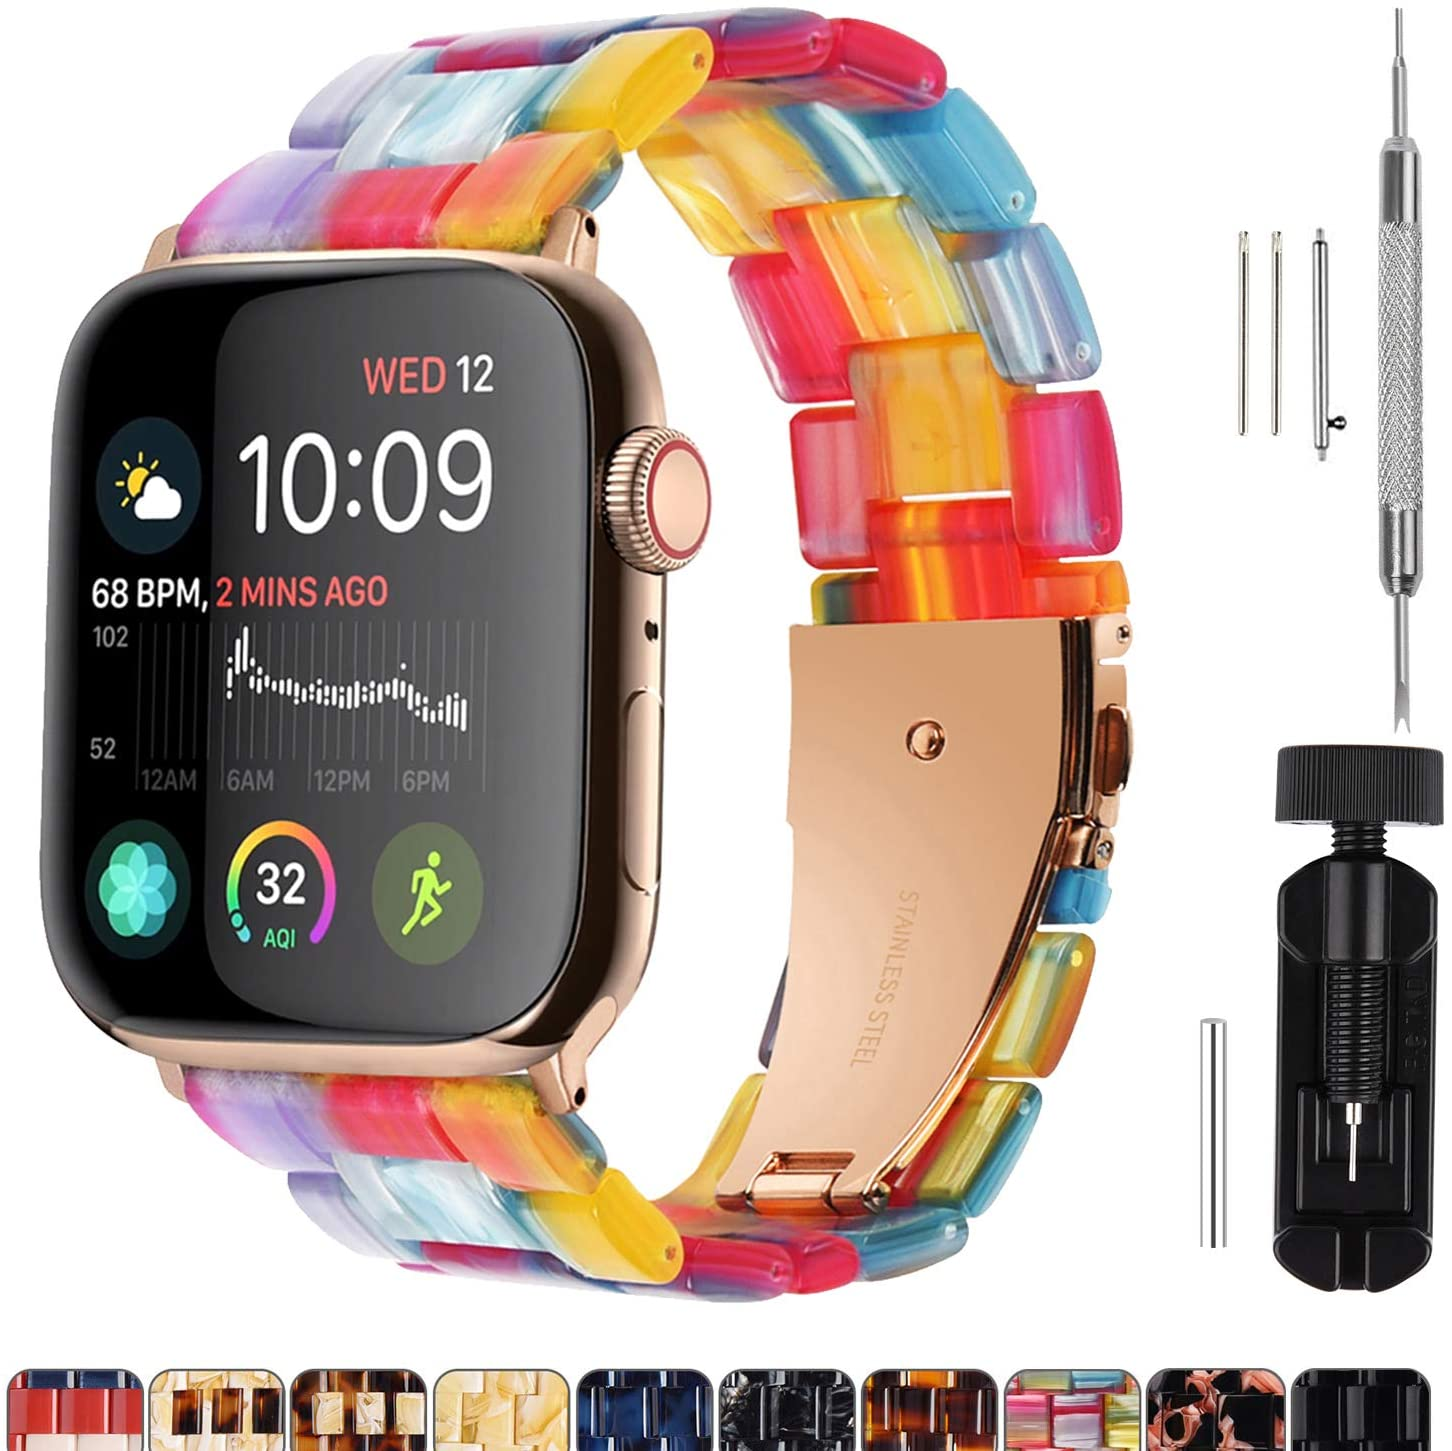 Fullmosa Compatible Apple Watch 44mm/42mm/40mm/38mm, Bright Resin Apple Watch Band for iWatch SE & Series 6/5/4/3/2/1, Hermes, Nike+, Edition, Rainbow(Gold Hardware) 44mm